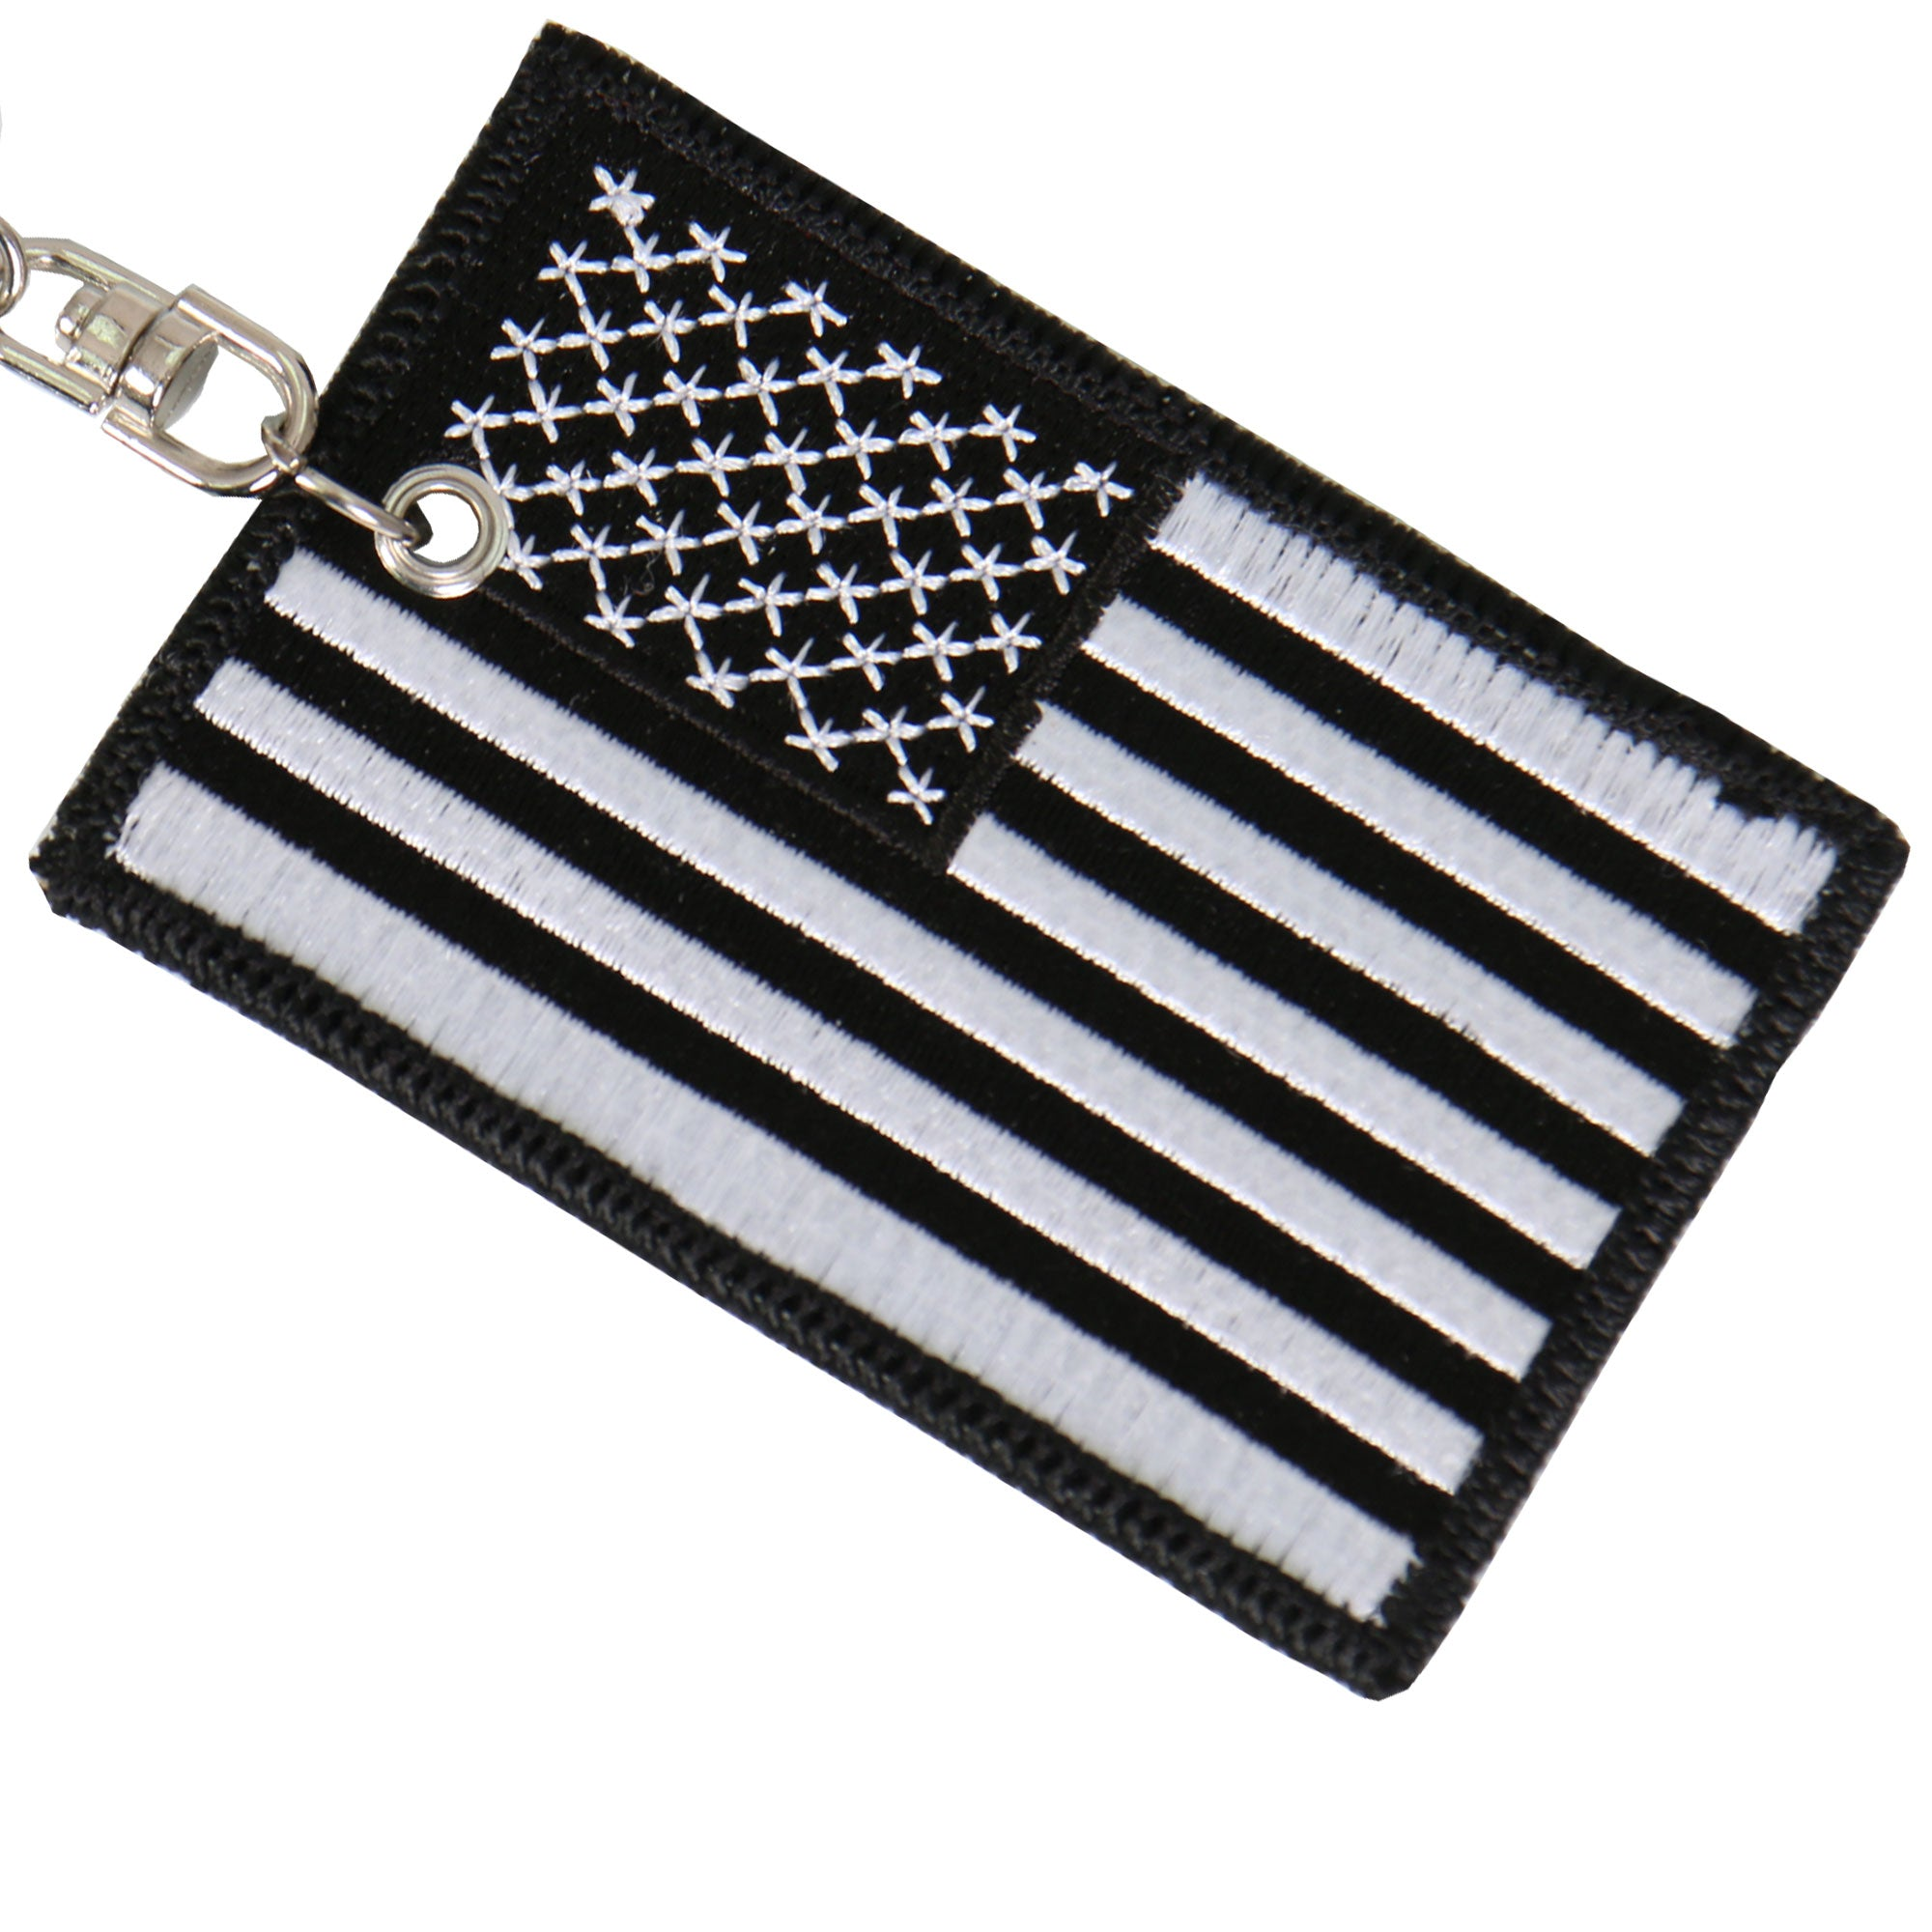 Hot Leathers Black & White American Flag Keychain